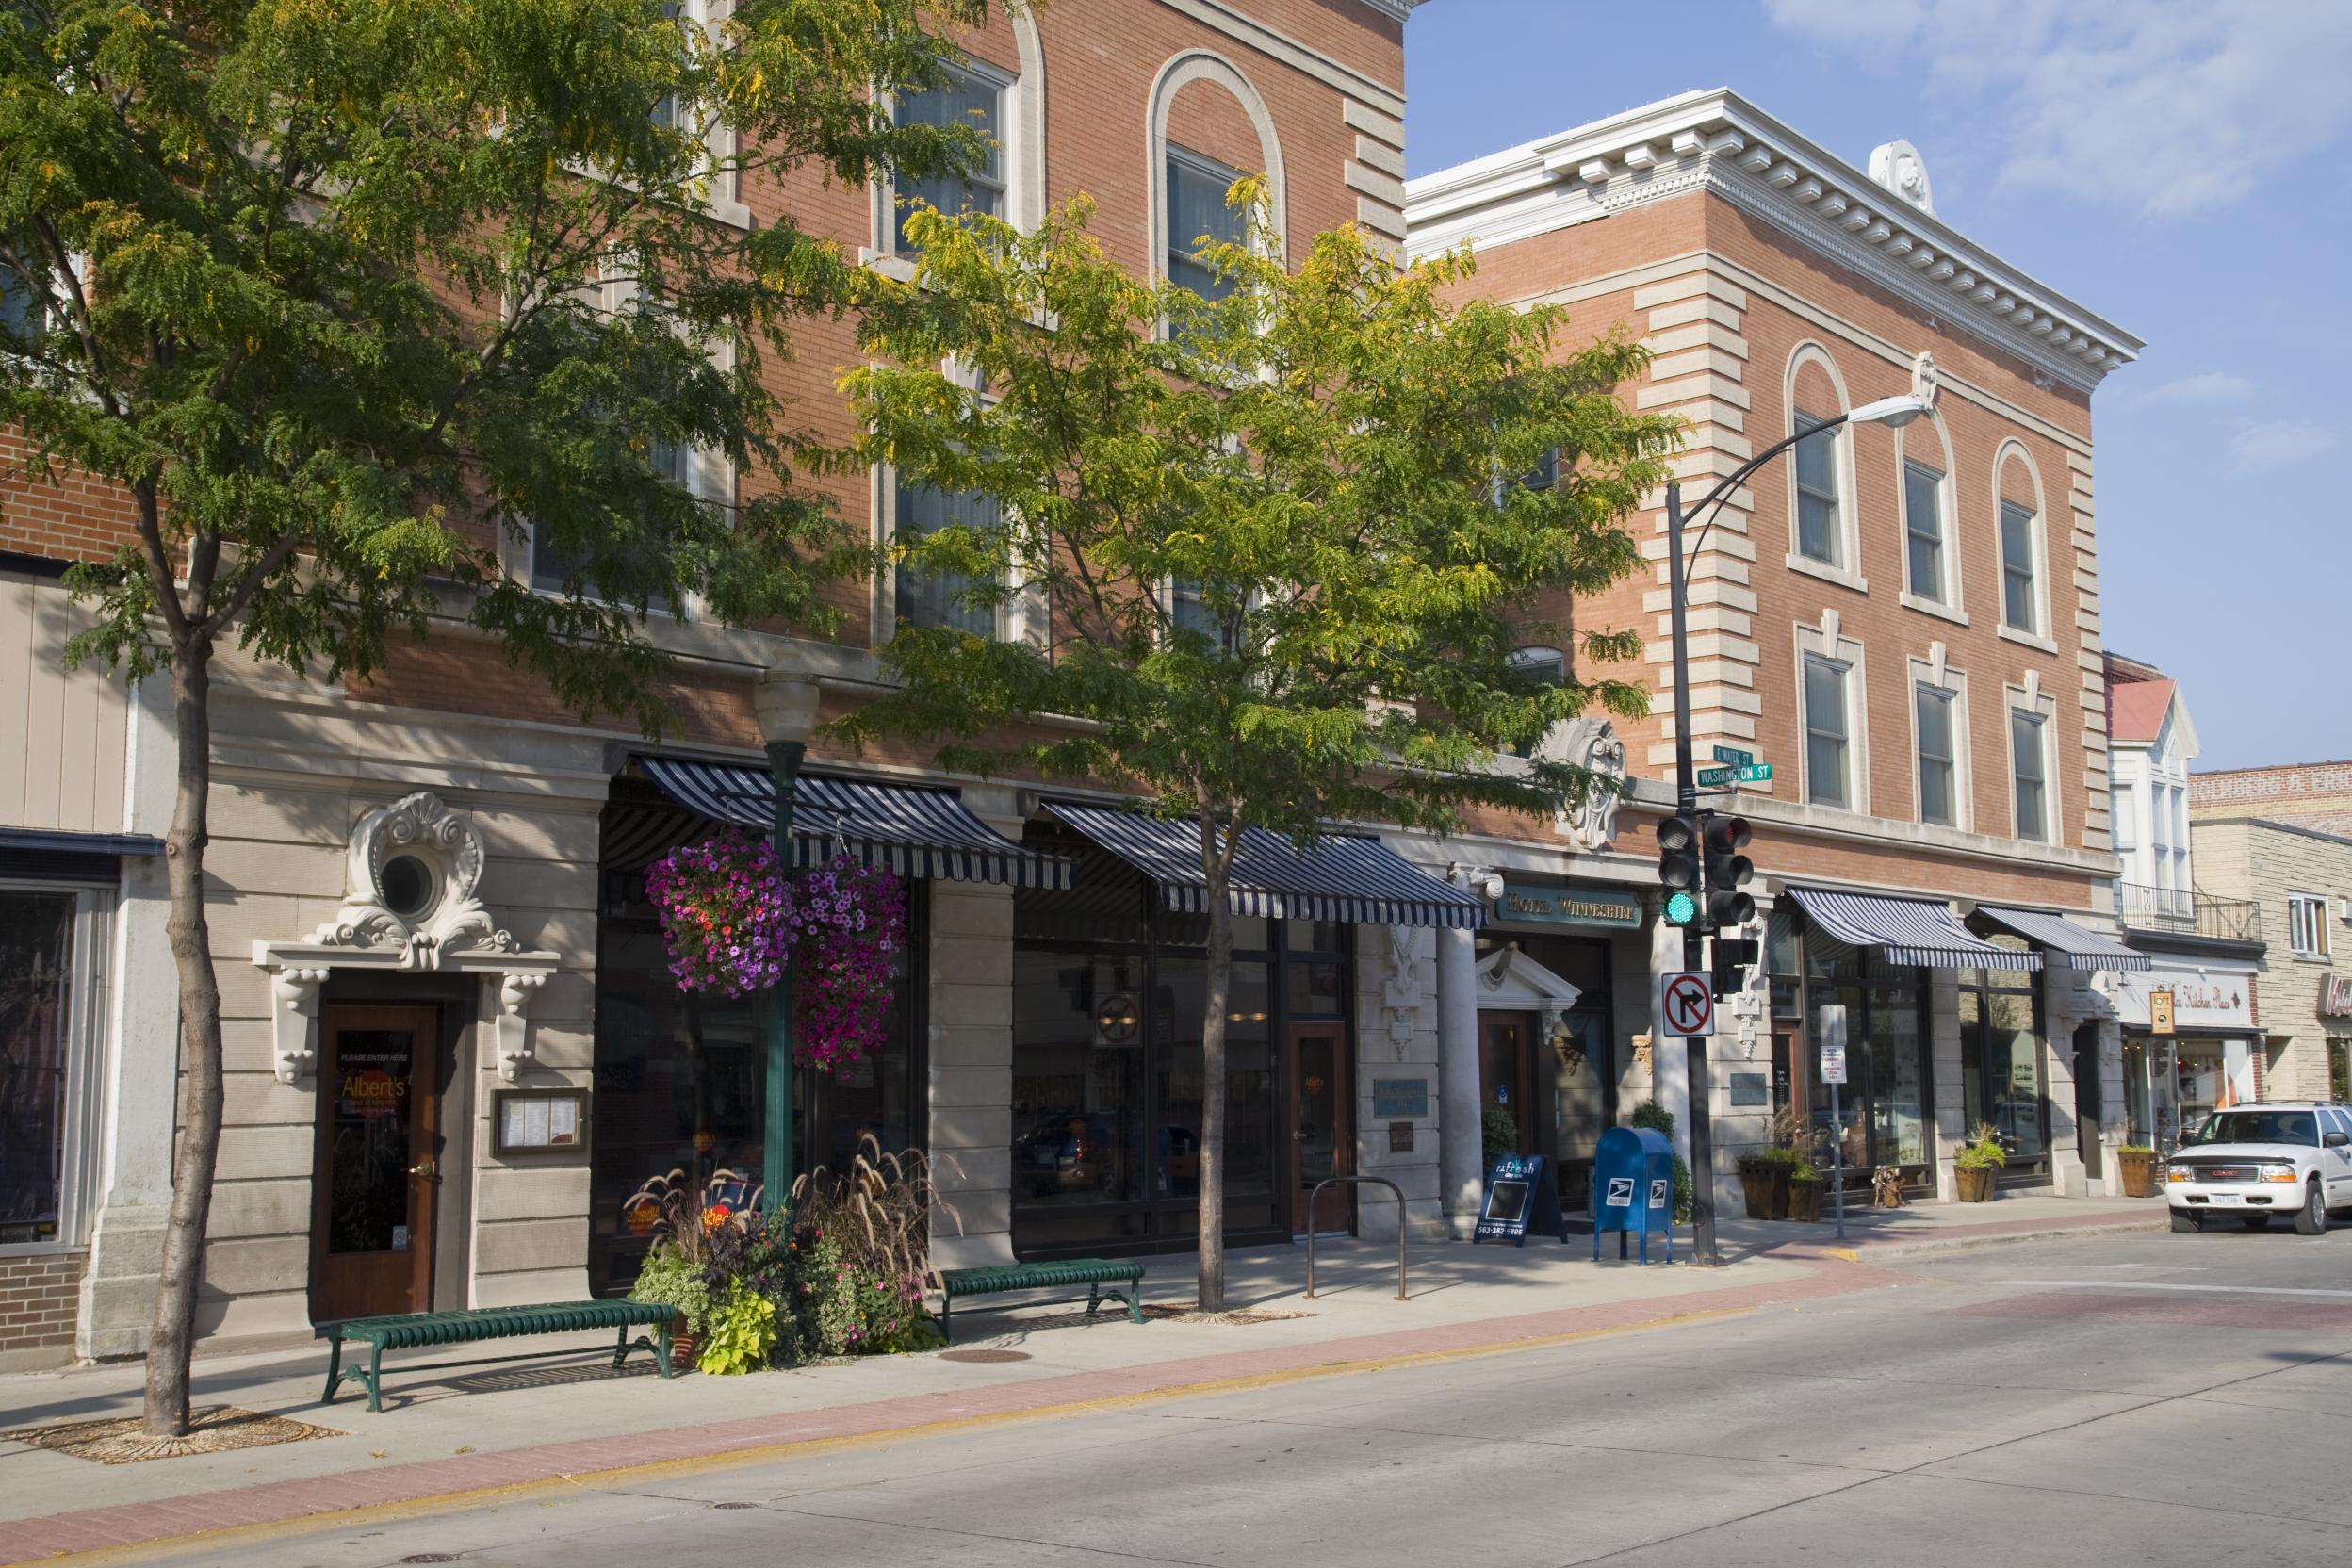 Downtown Decorah boasts local shops hidden under rows of nautical striped awnings.